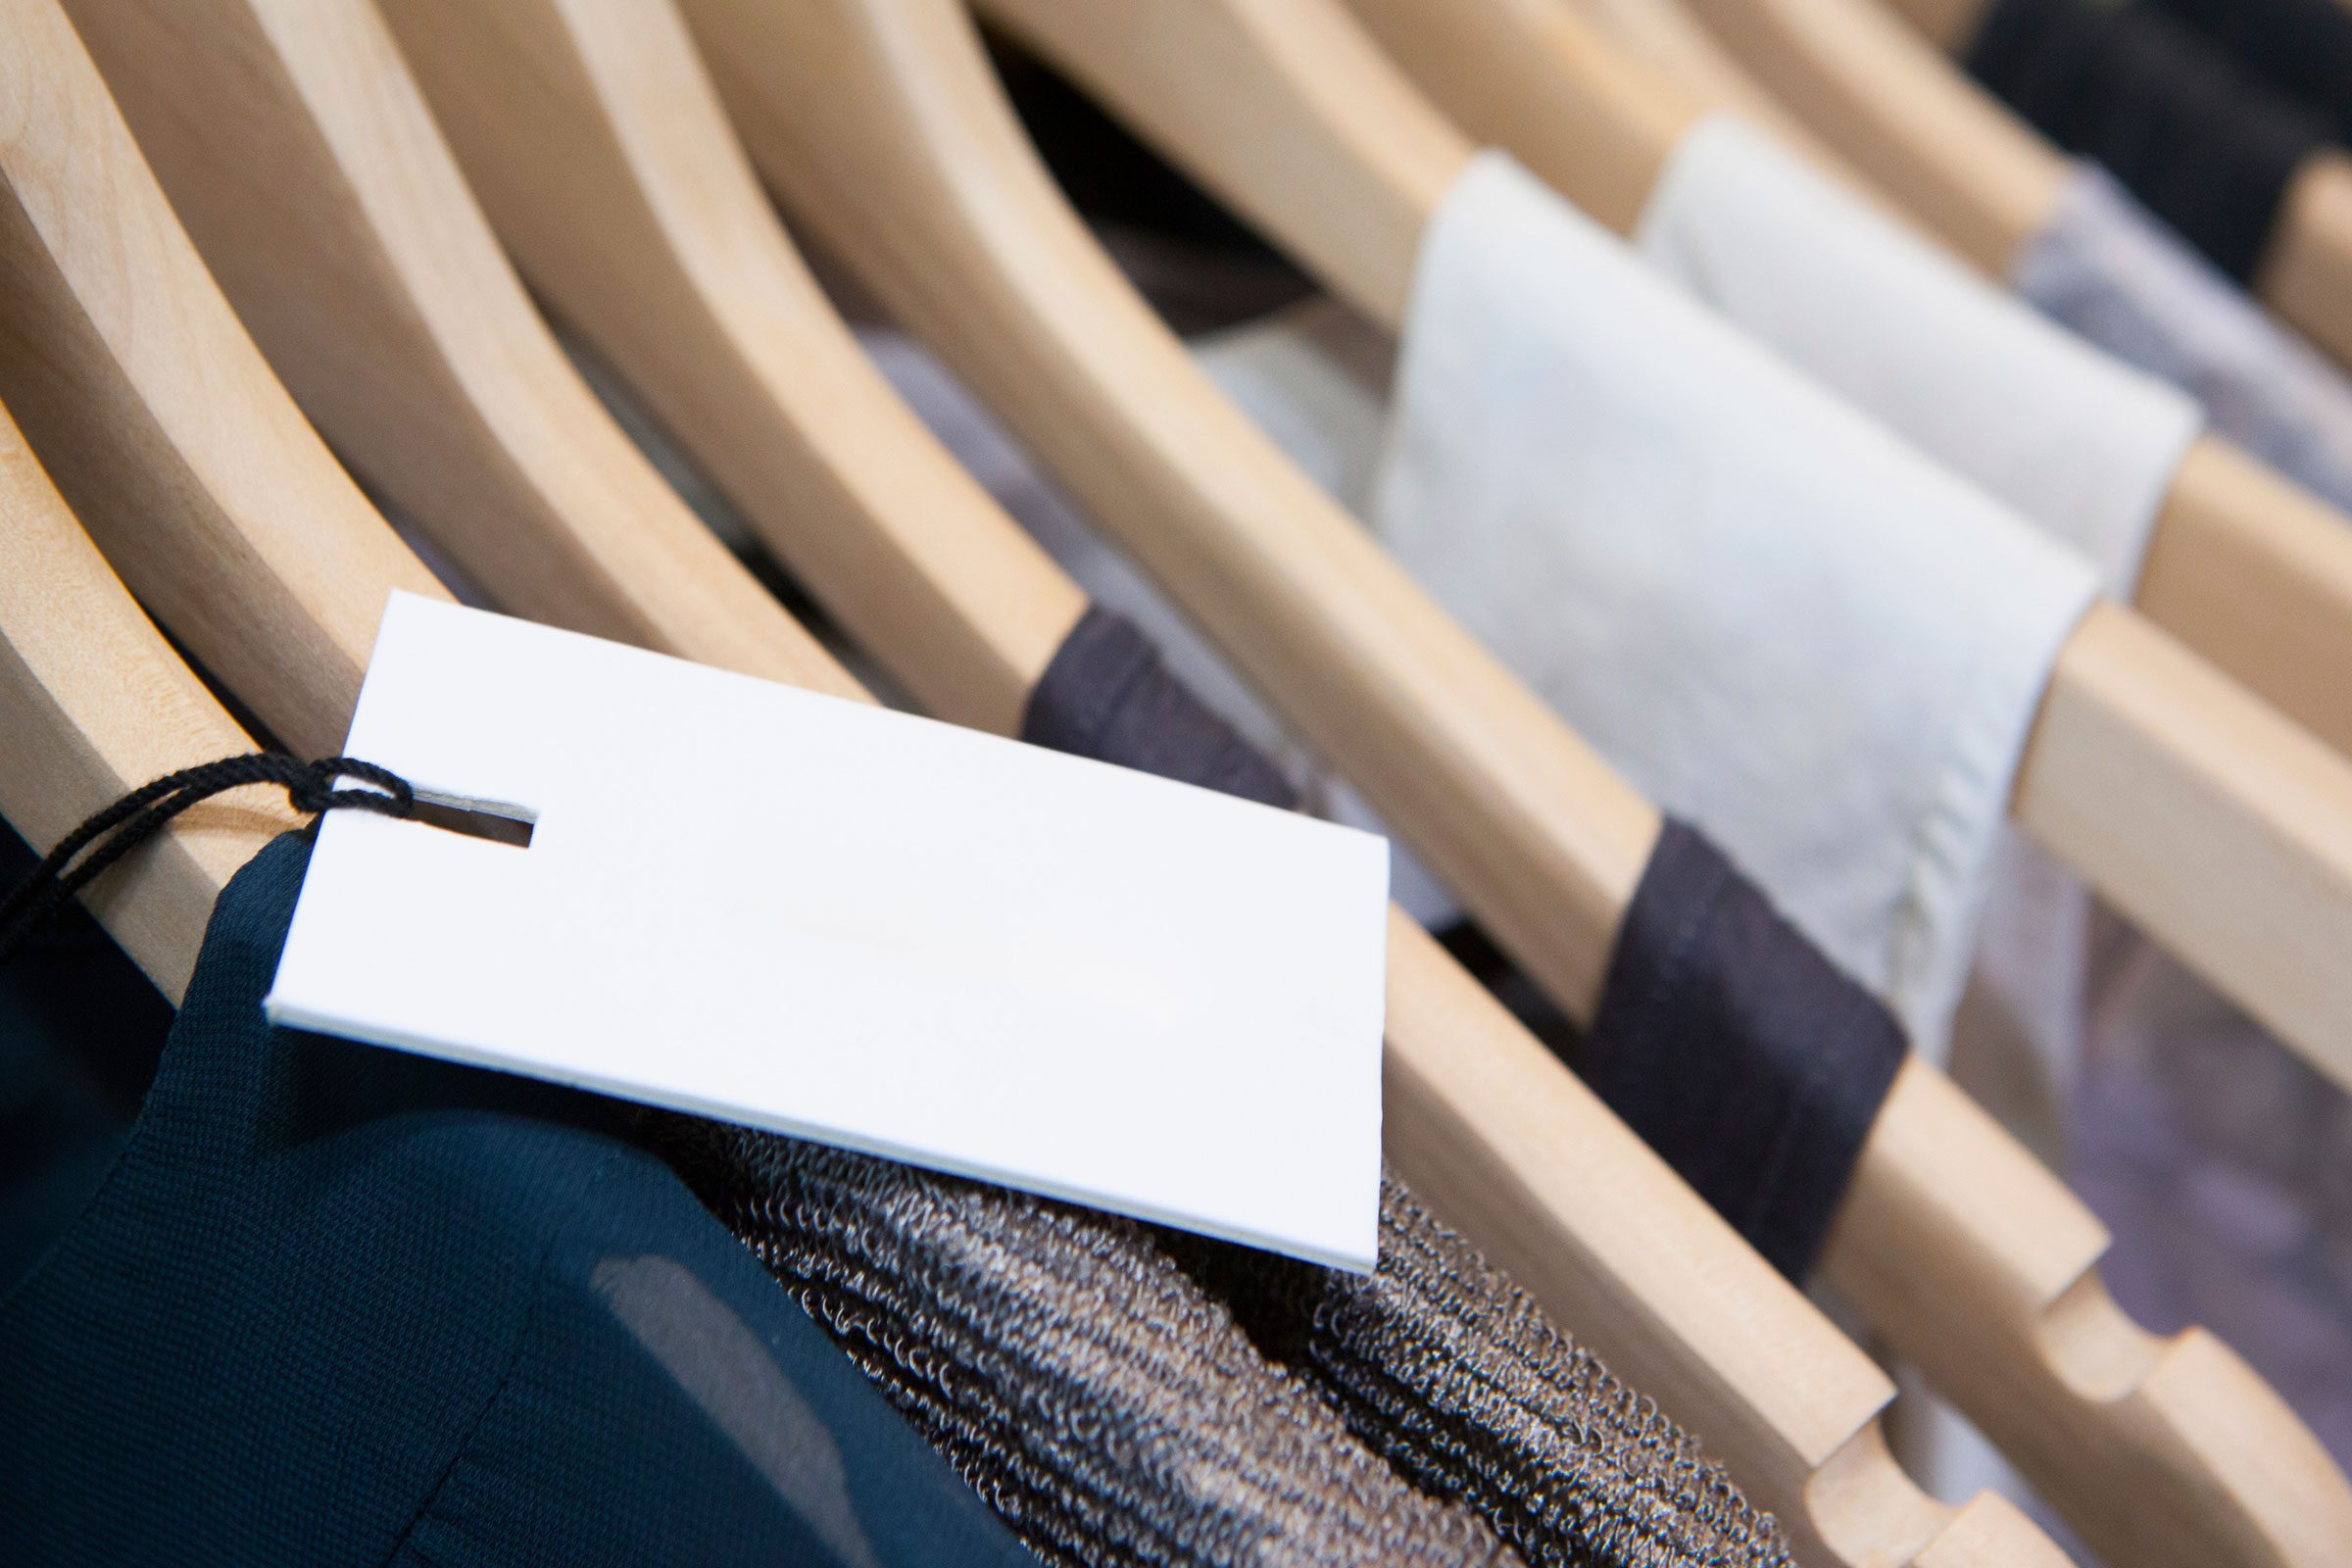 Does anyone have a shopping addiction, or has got into a large amount of consumer debt?